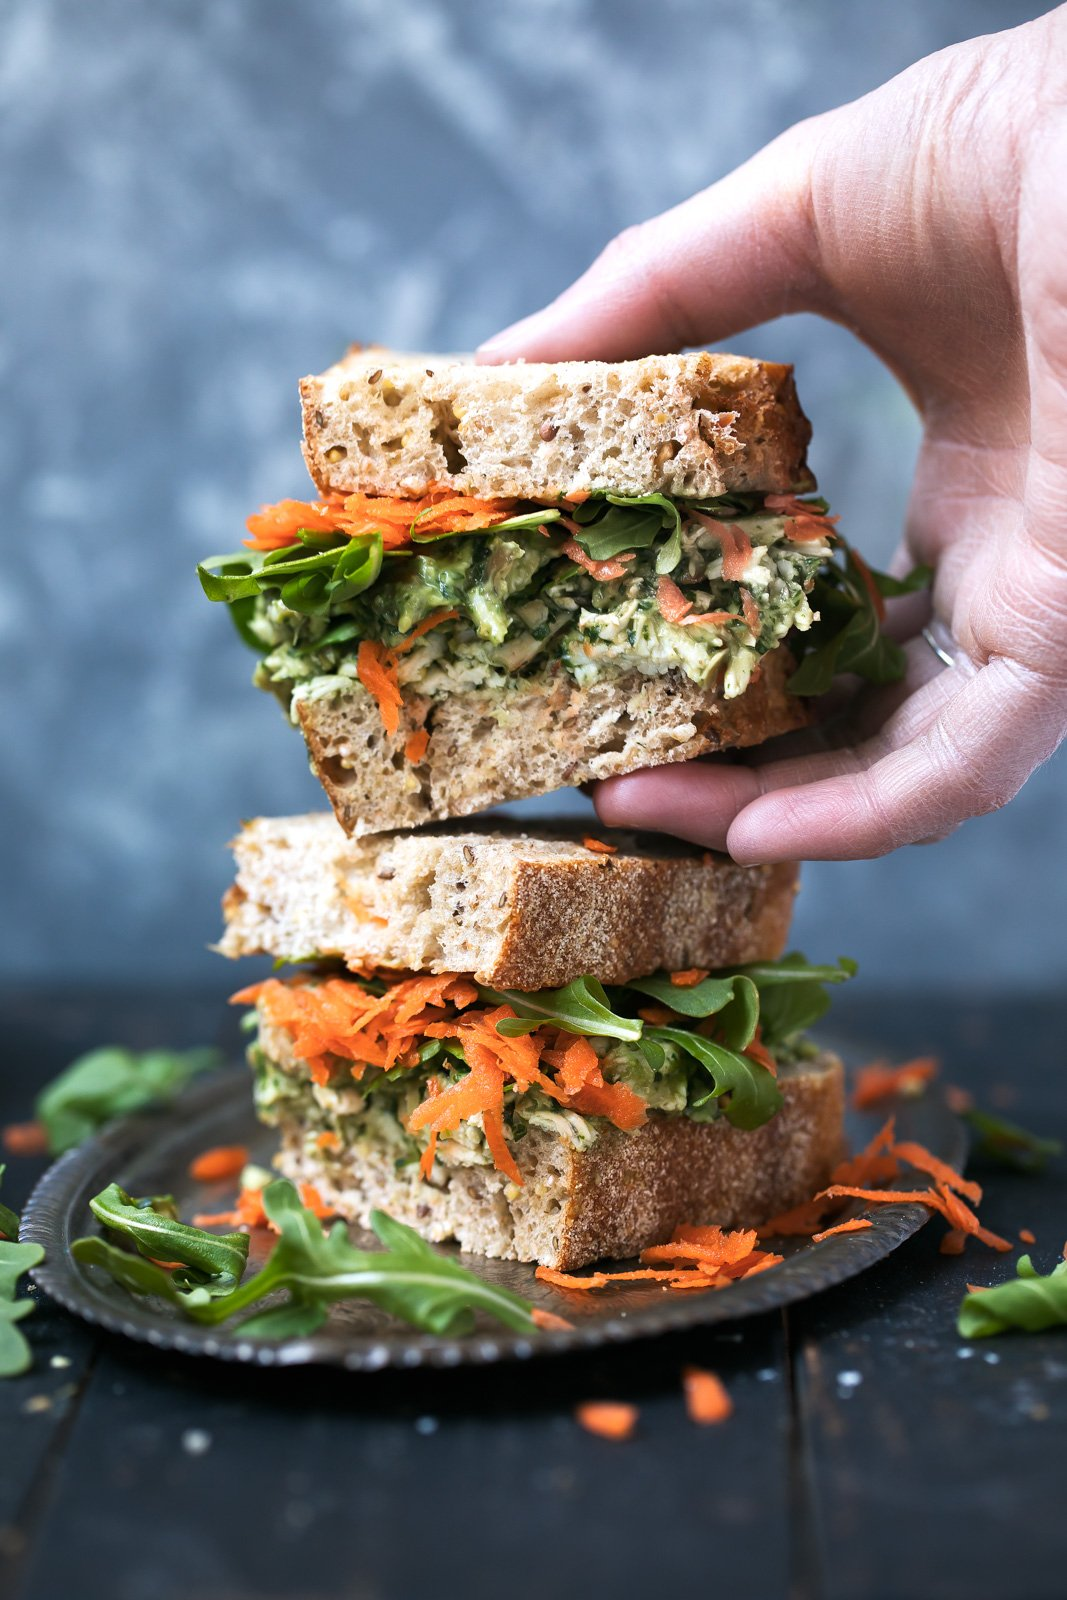 Hand grabbing half of an avocado pesto chicken salad sandwich